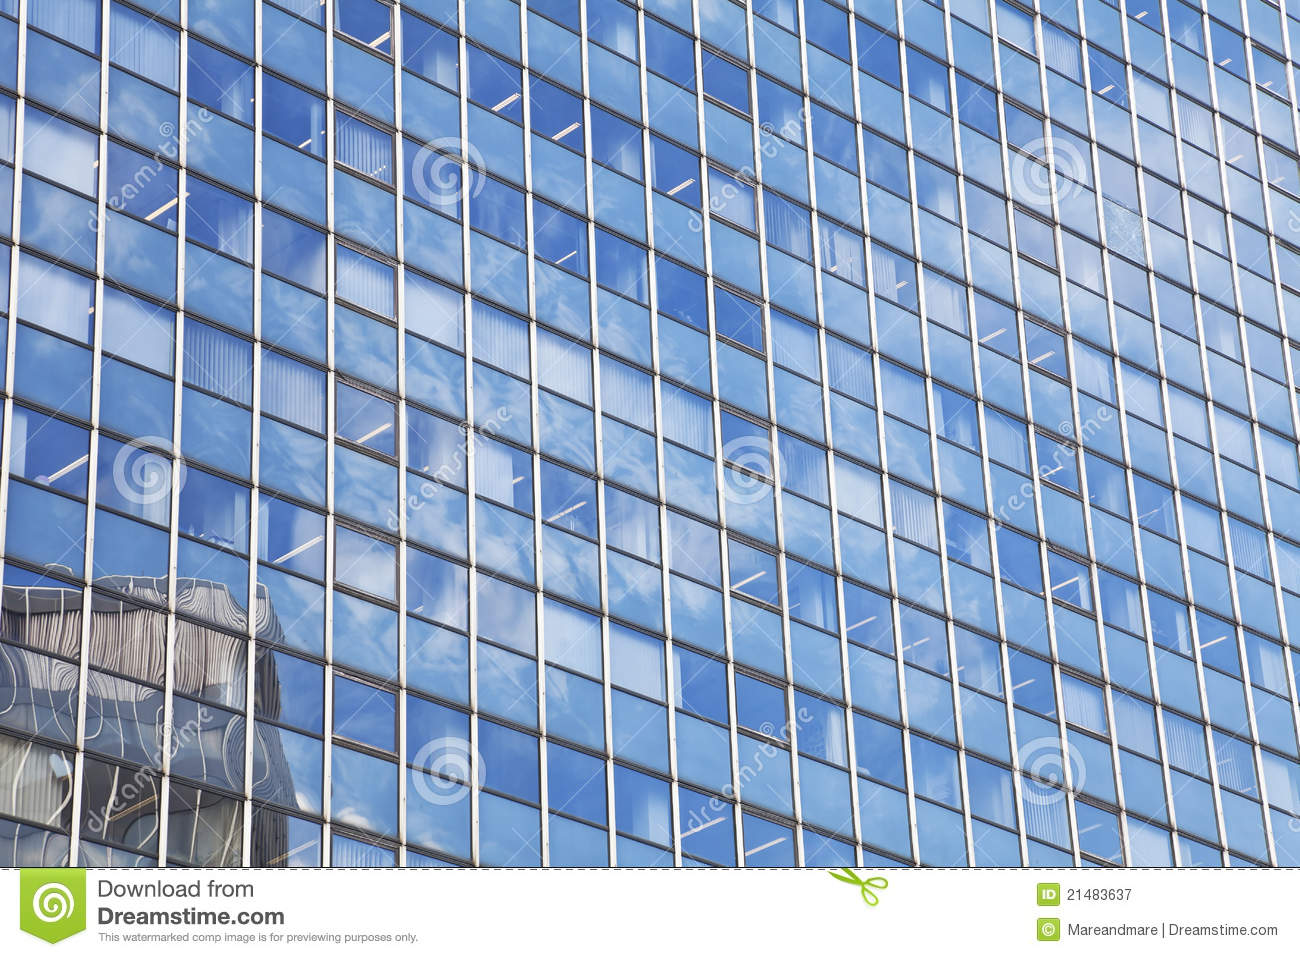 Glass Facade Of Office Building Royalty Free Stock Image: Glass Facade Of The Building Royalty Free Stock